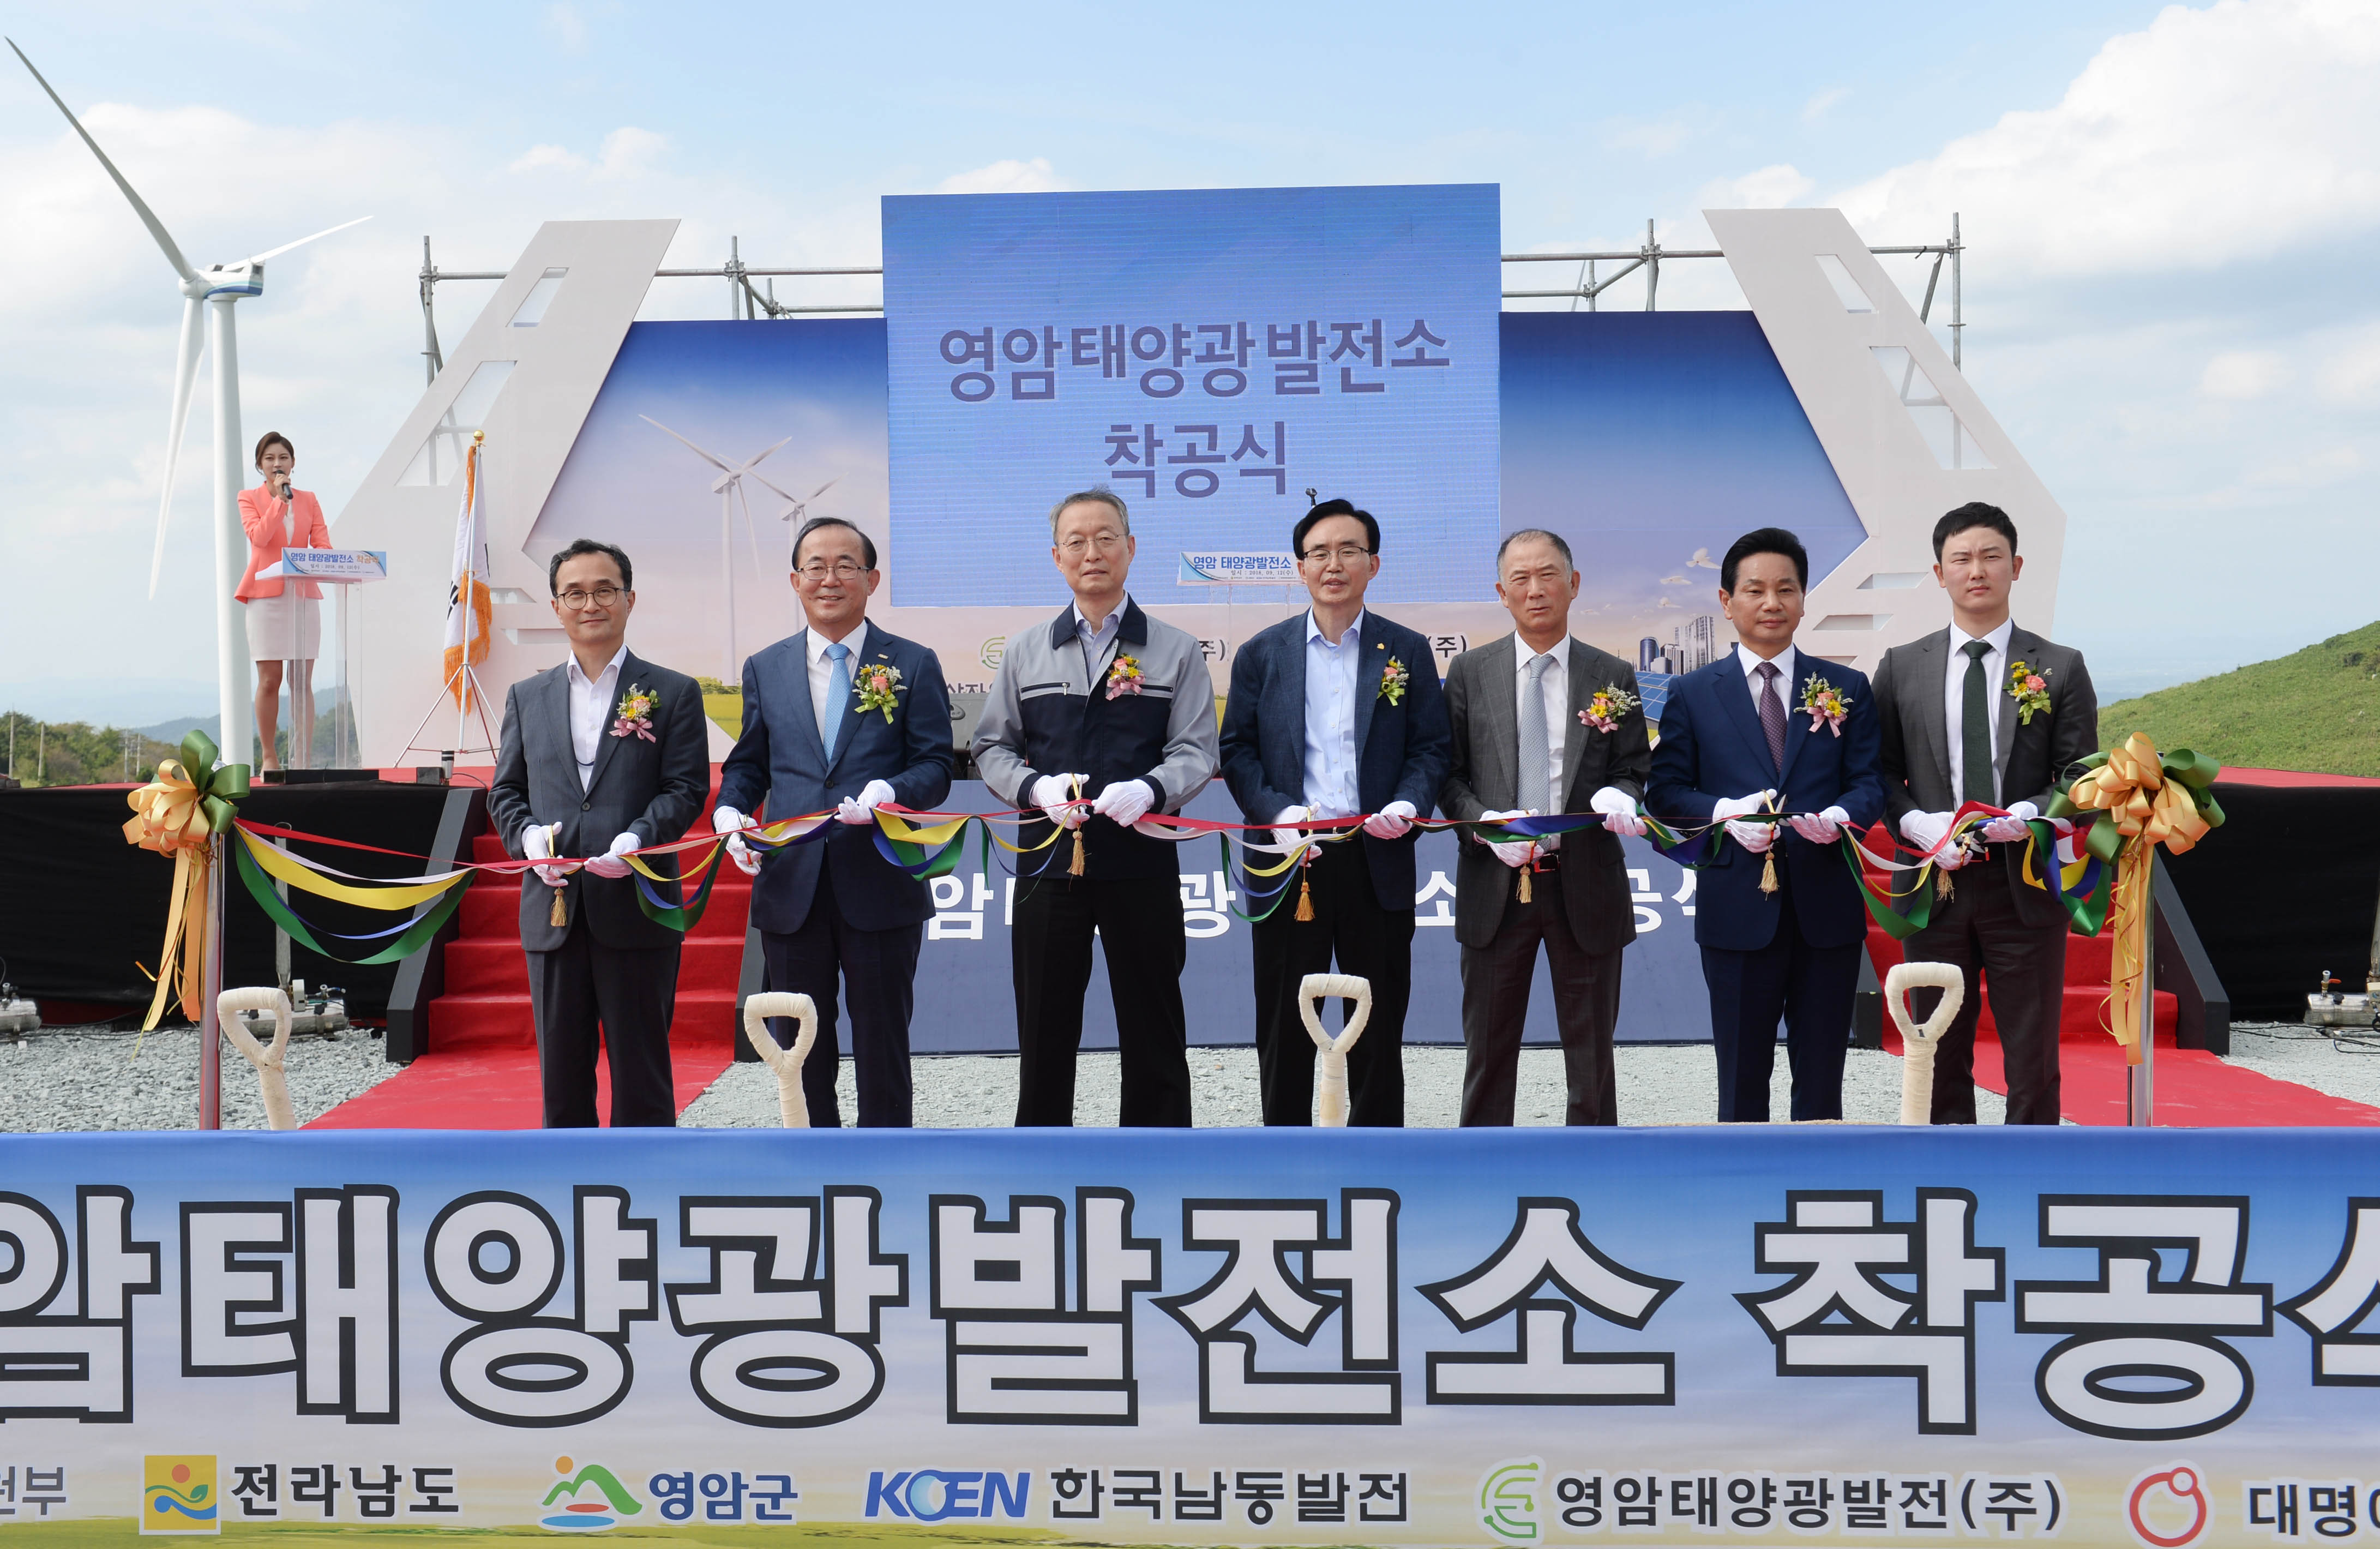 Minister Paik attends groundbreaking ceremony for nation's largest solar power plant